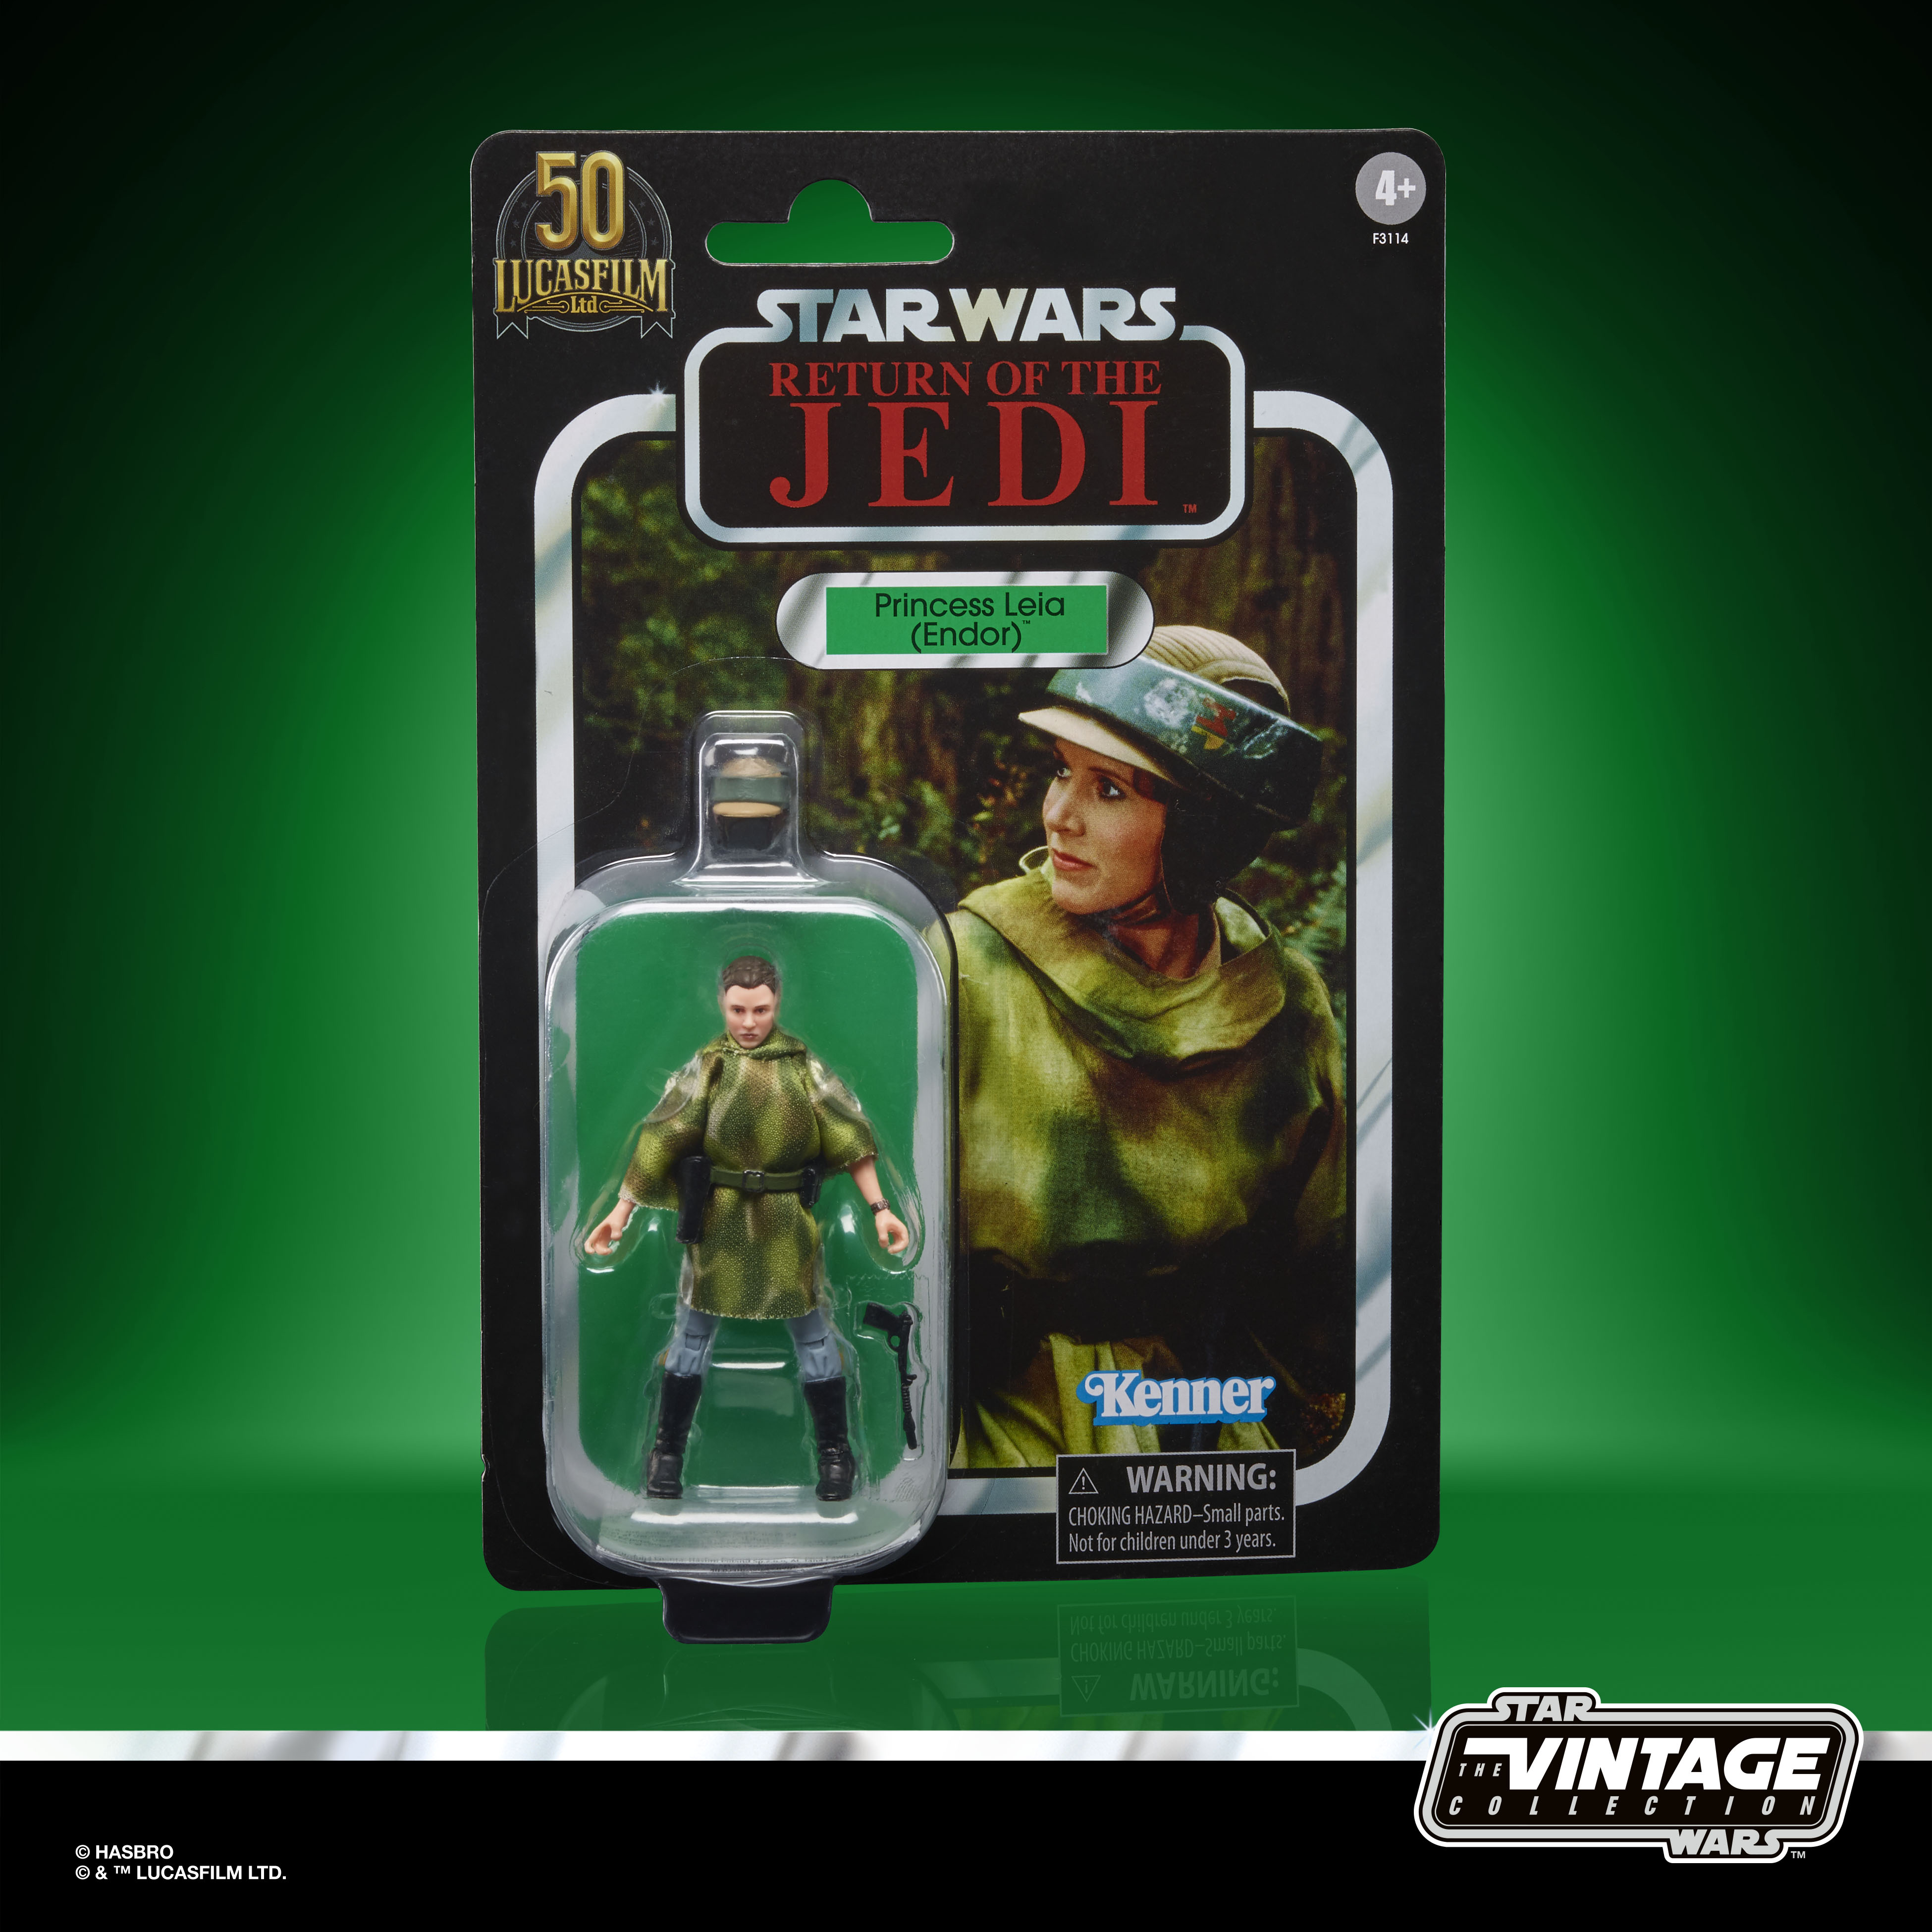 STAR WARS THE VINTAGE COLLECTION LUCASFILM FIRST 50 YEARS 3.75-INCH PRINCESS LEIA (ENDOR) Figure – inpck